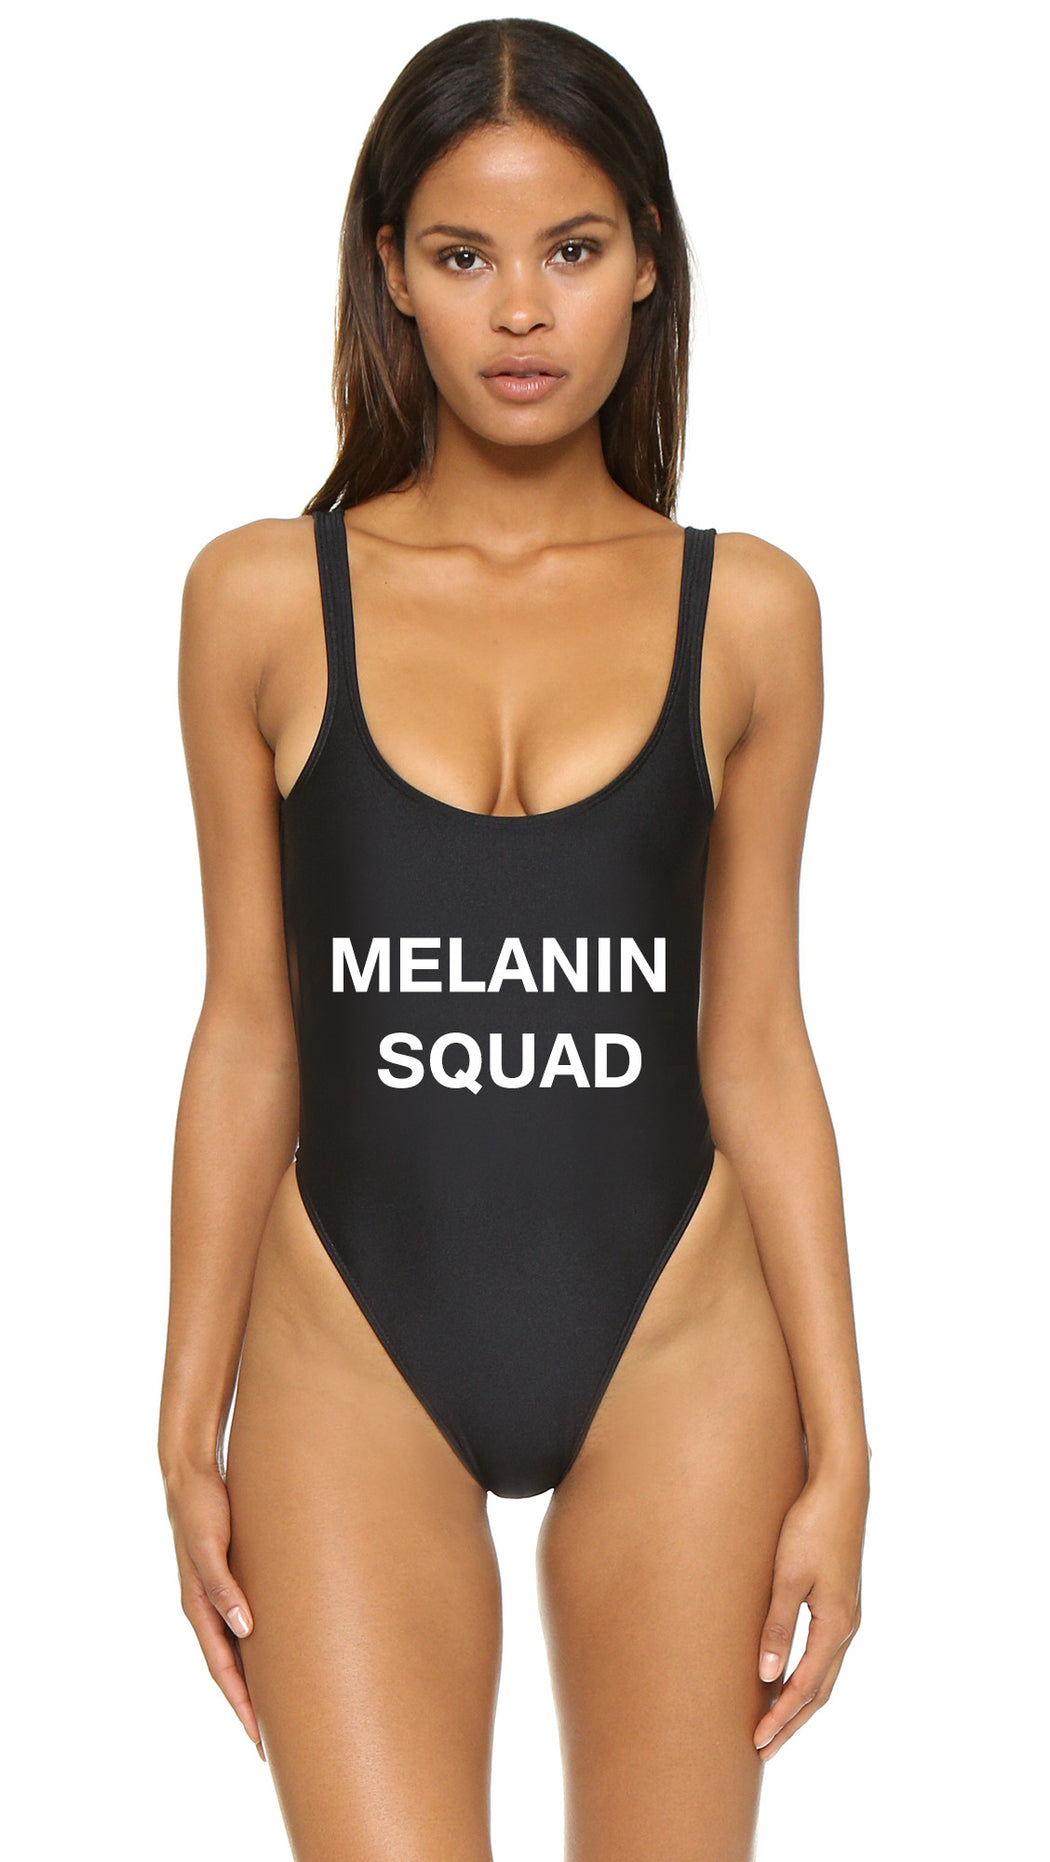 Melanin Squad One-Piece Suit